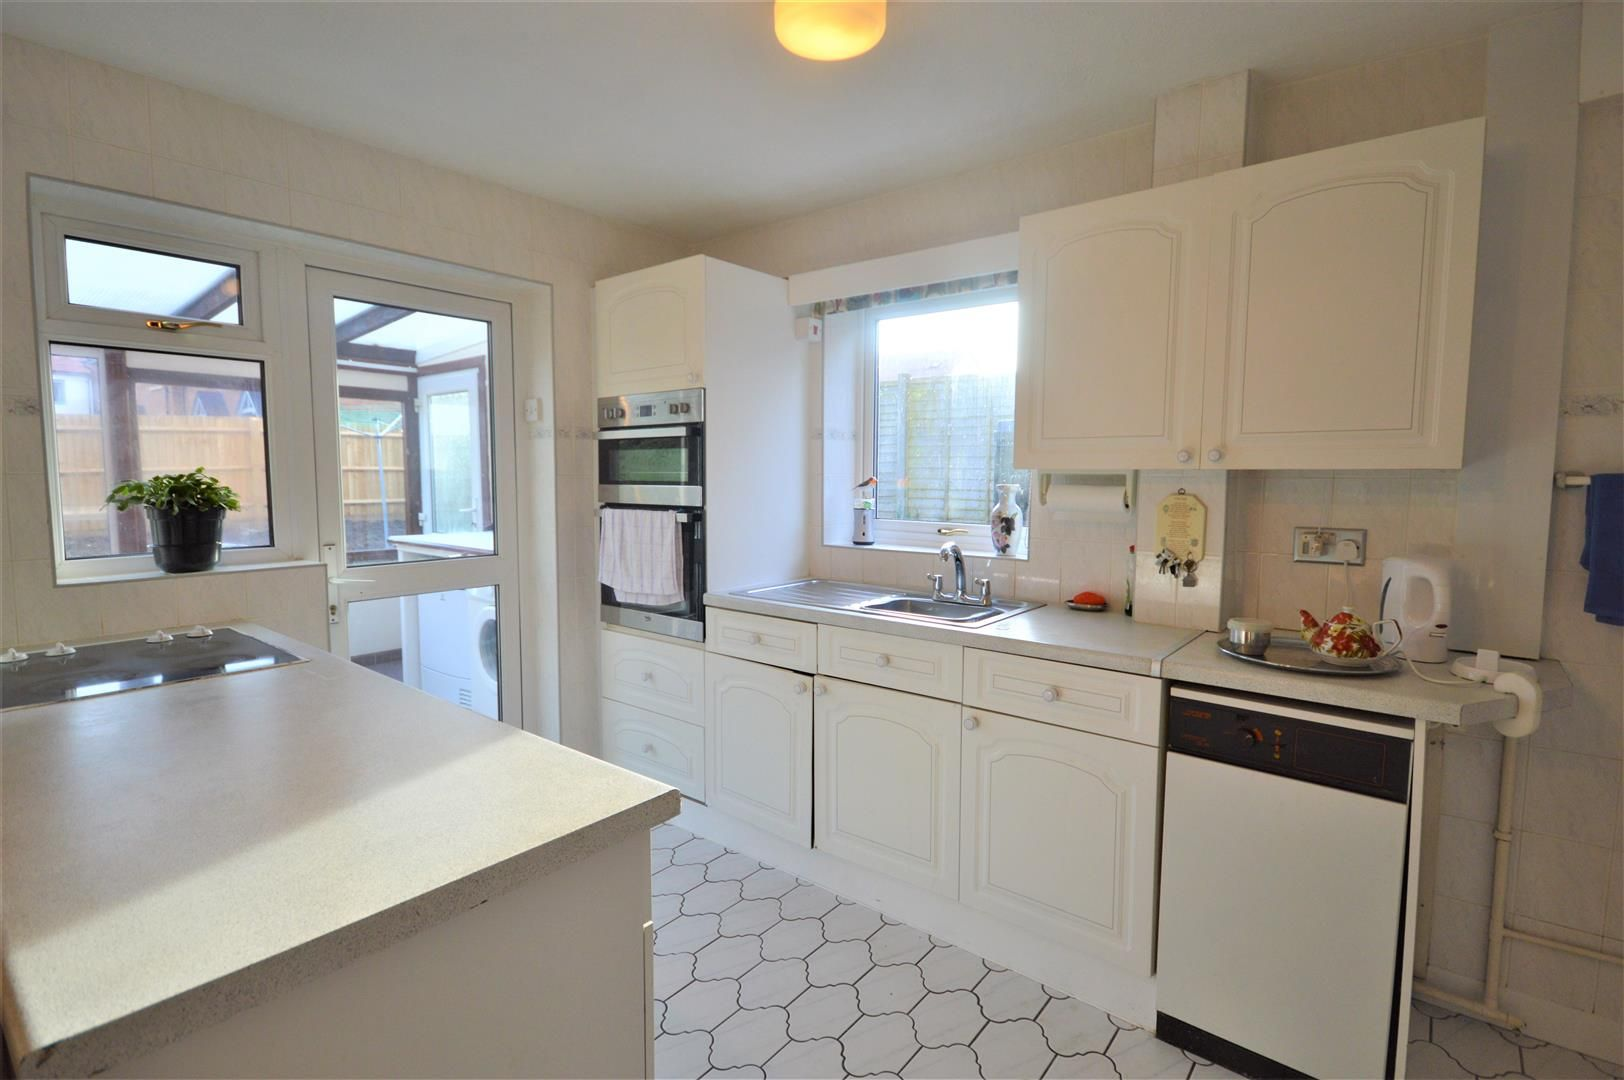 4 bed detached for sale in Weobley 4